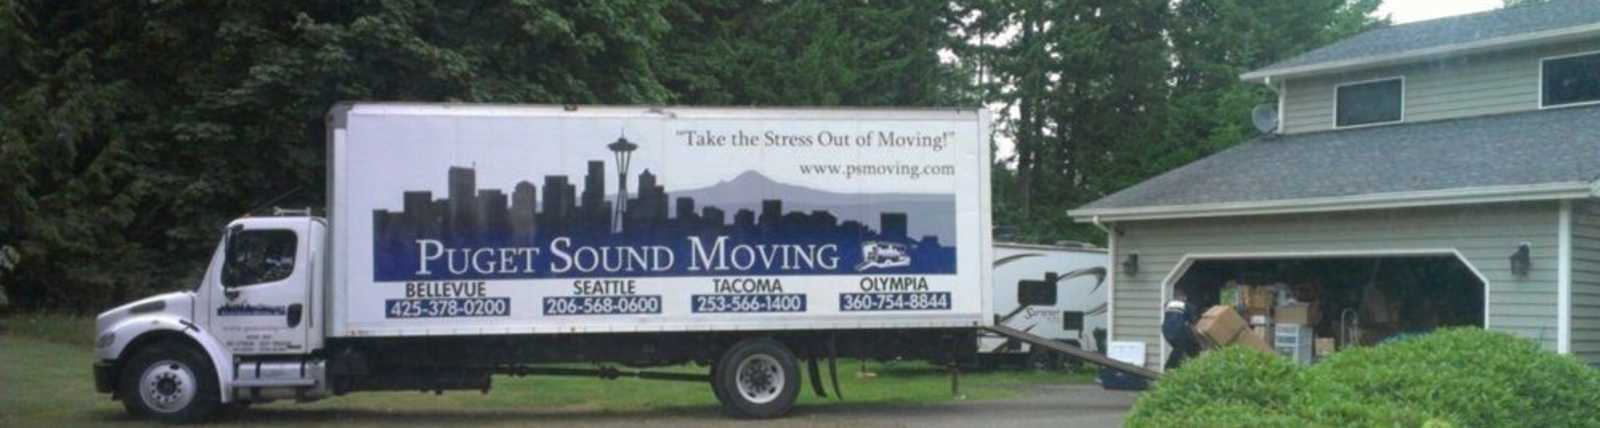 Puget Sound Moving